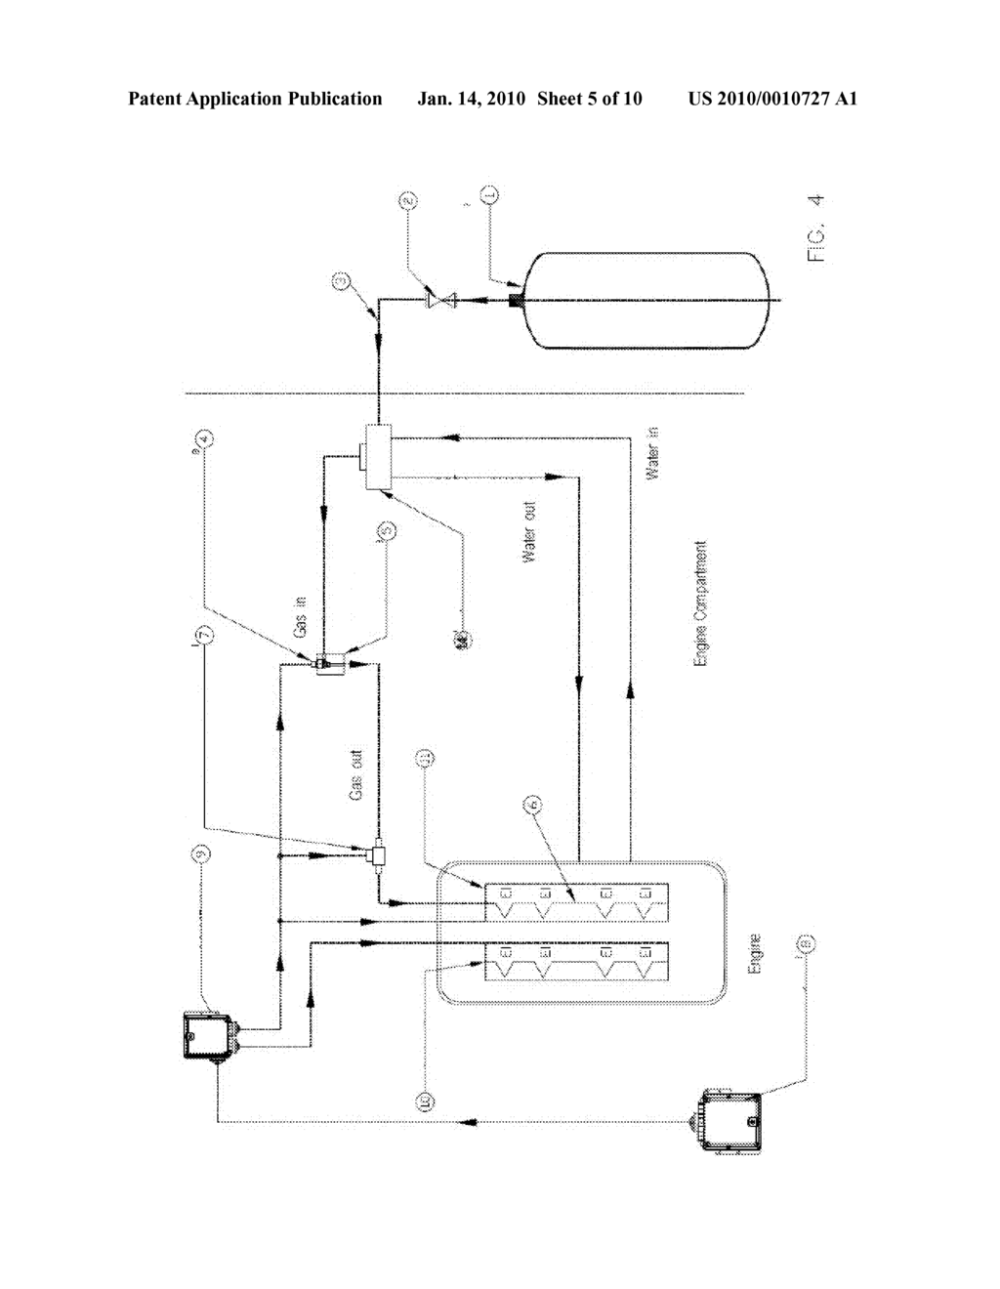 medium resolution of system for supply of lpg methane ammonia and gas in general for petrol or diesel engines with electronic pressure regulator for continuous variation of